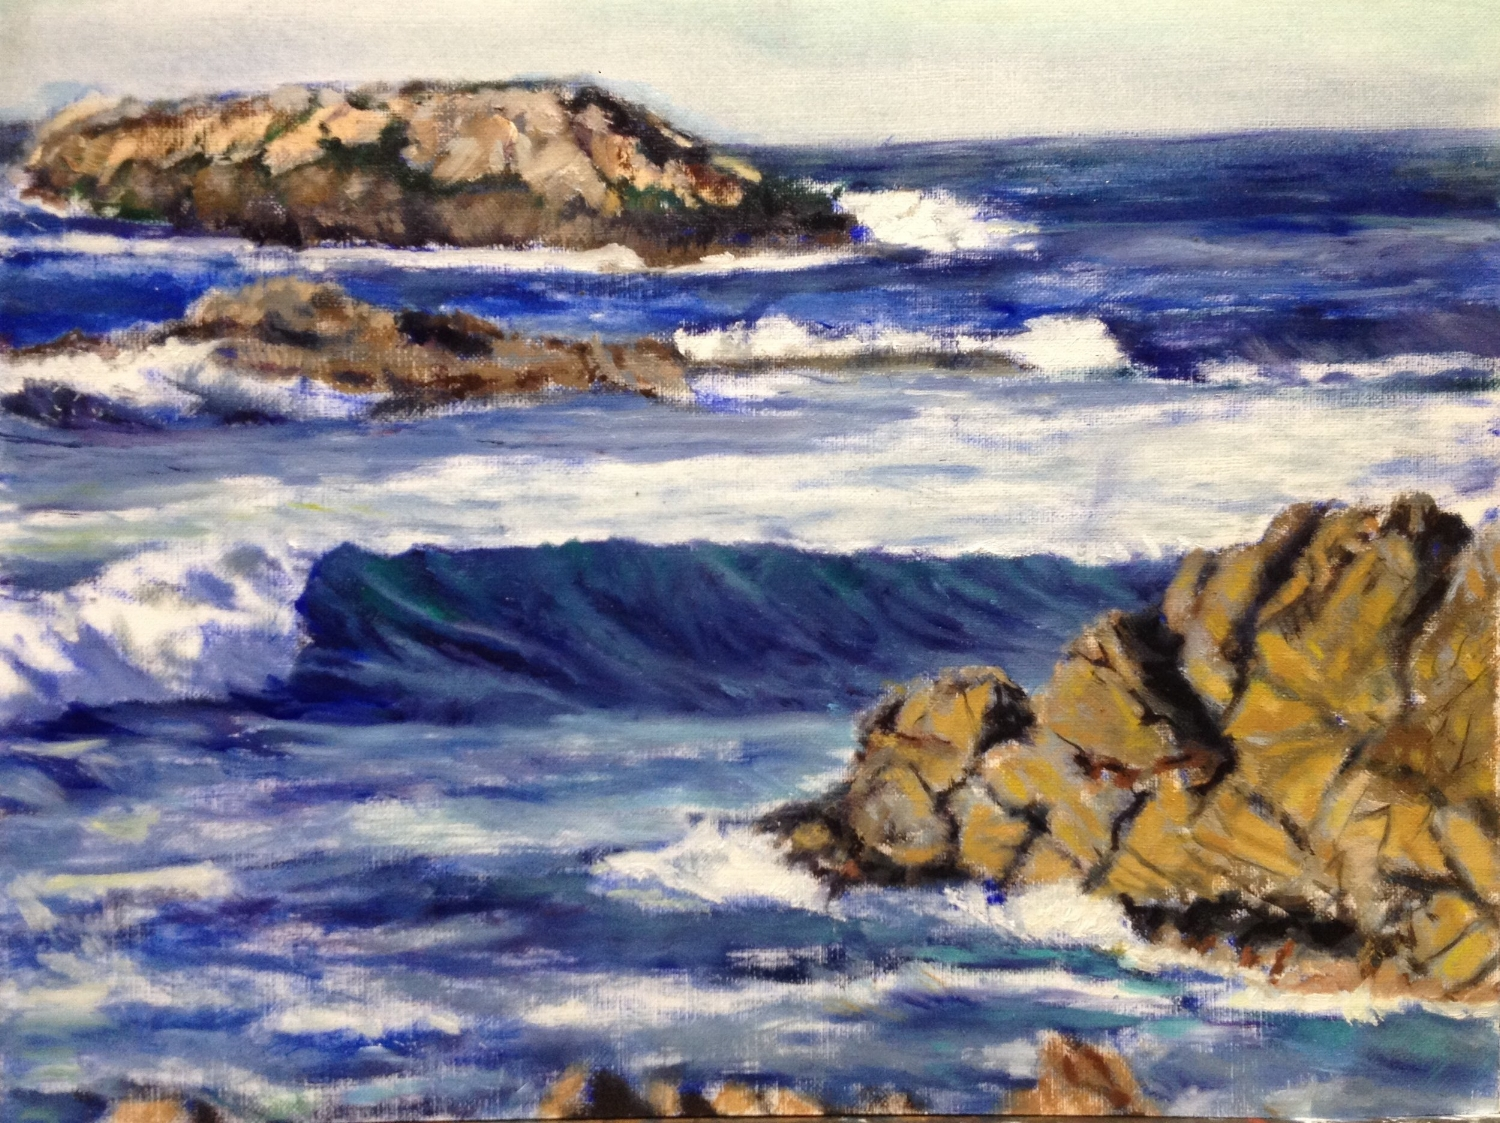 Seascape Study - Oil Sketch